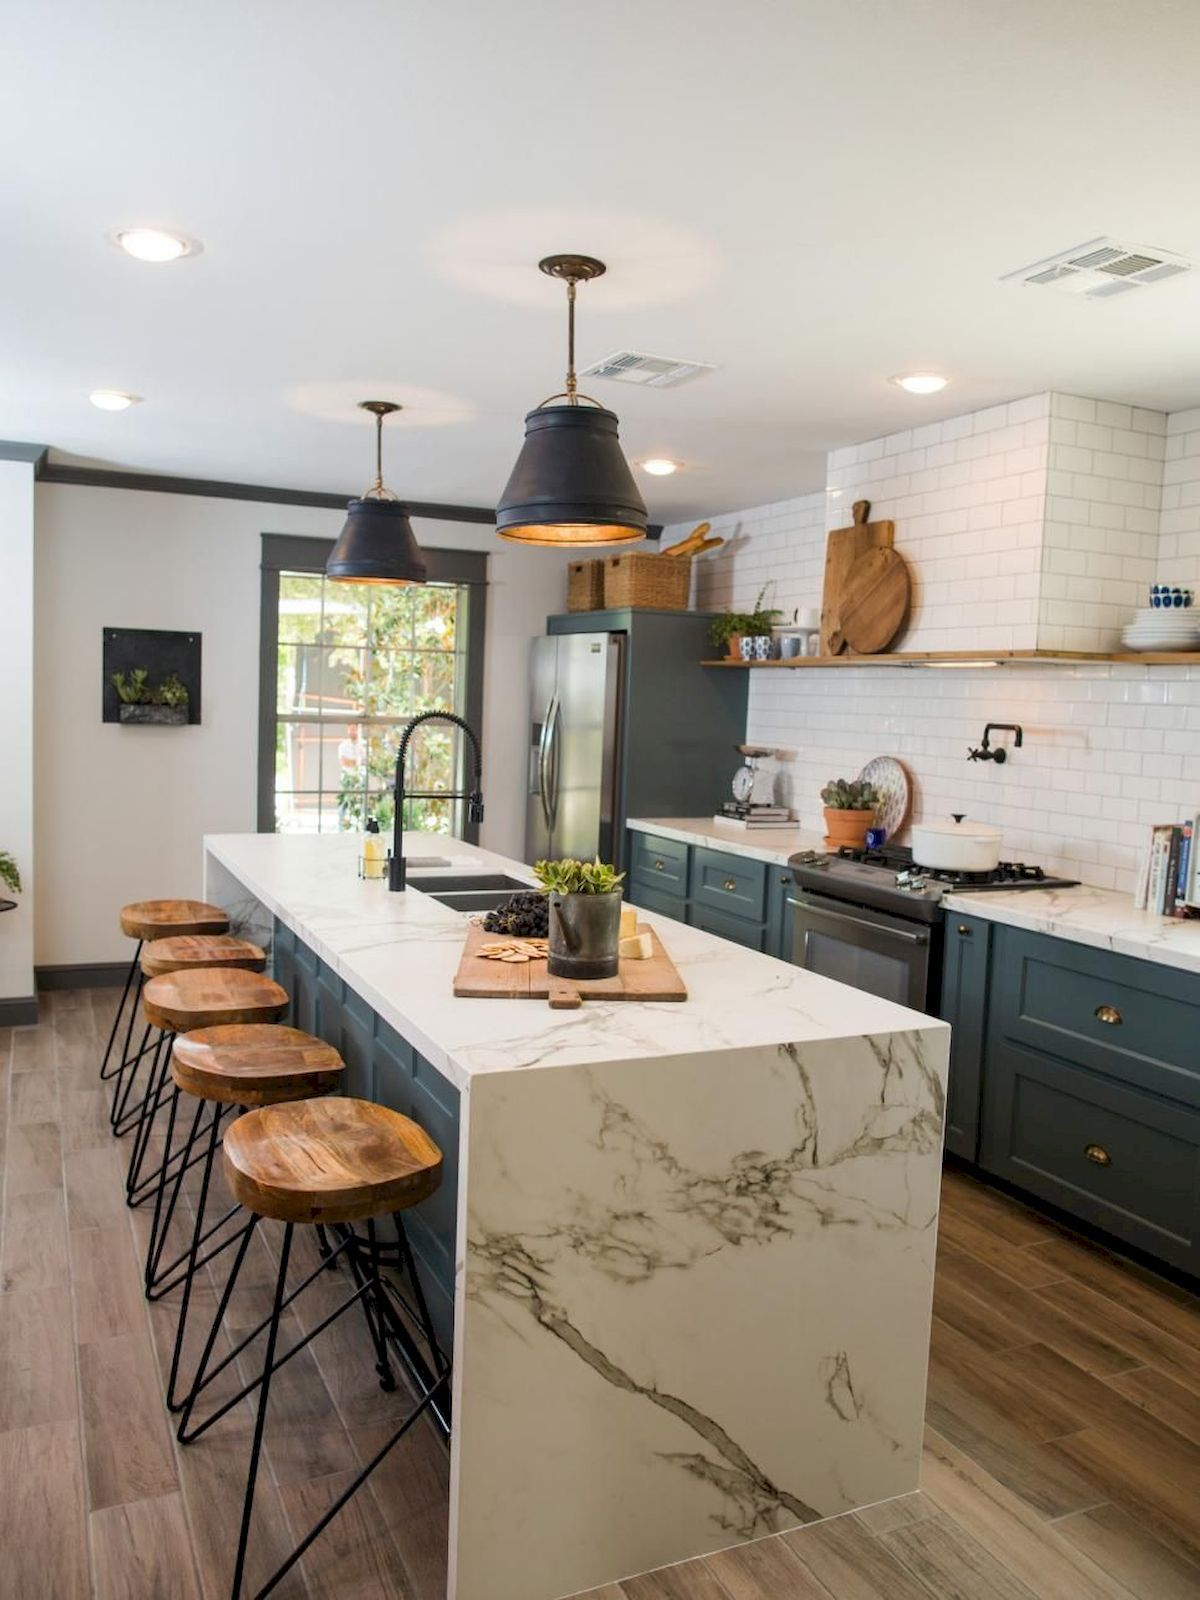 Amazing Barstools That Add Comfortable Style To The Kitchen Httpscarrebianhomecom